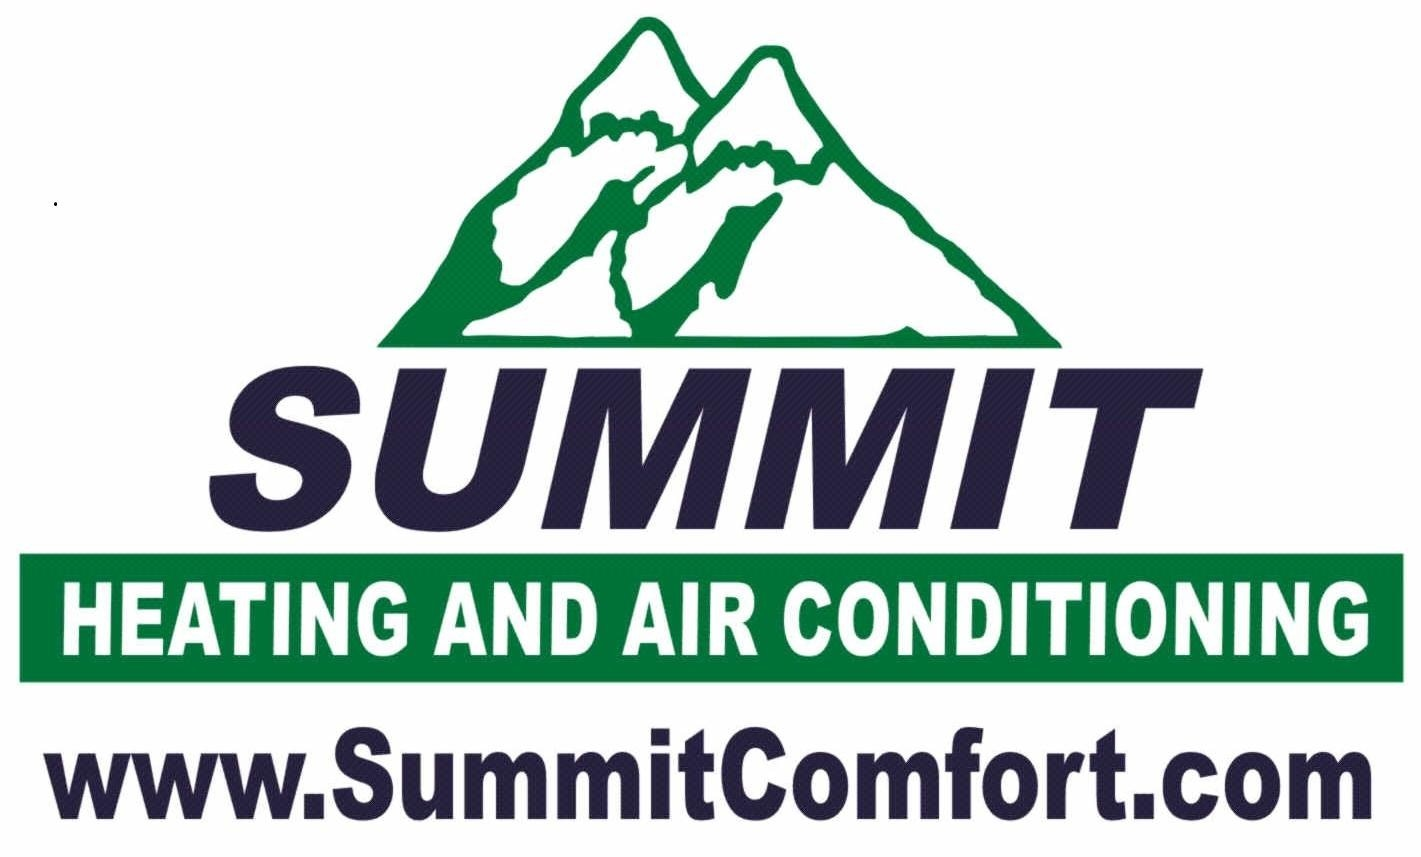 Summit Heating and Air Conditioning LLC